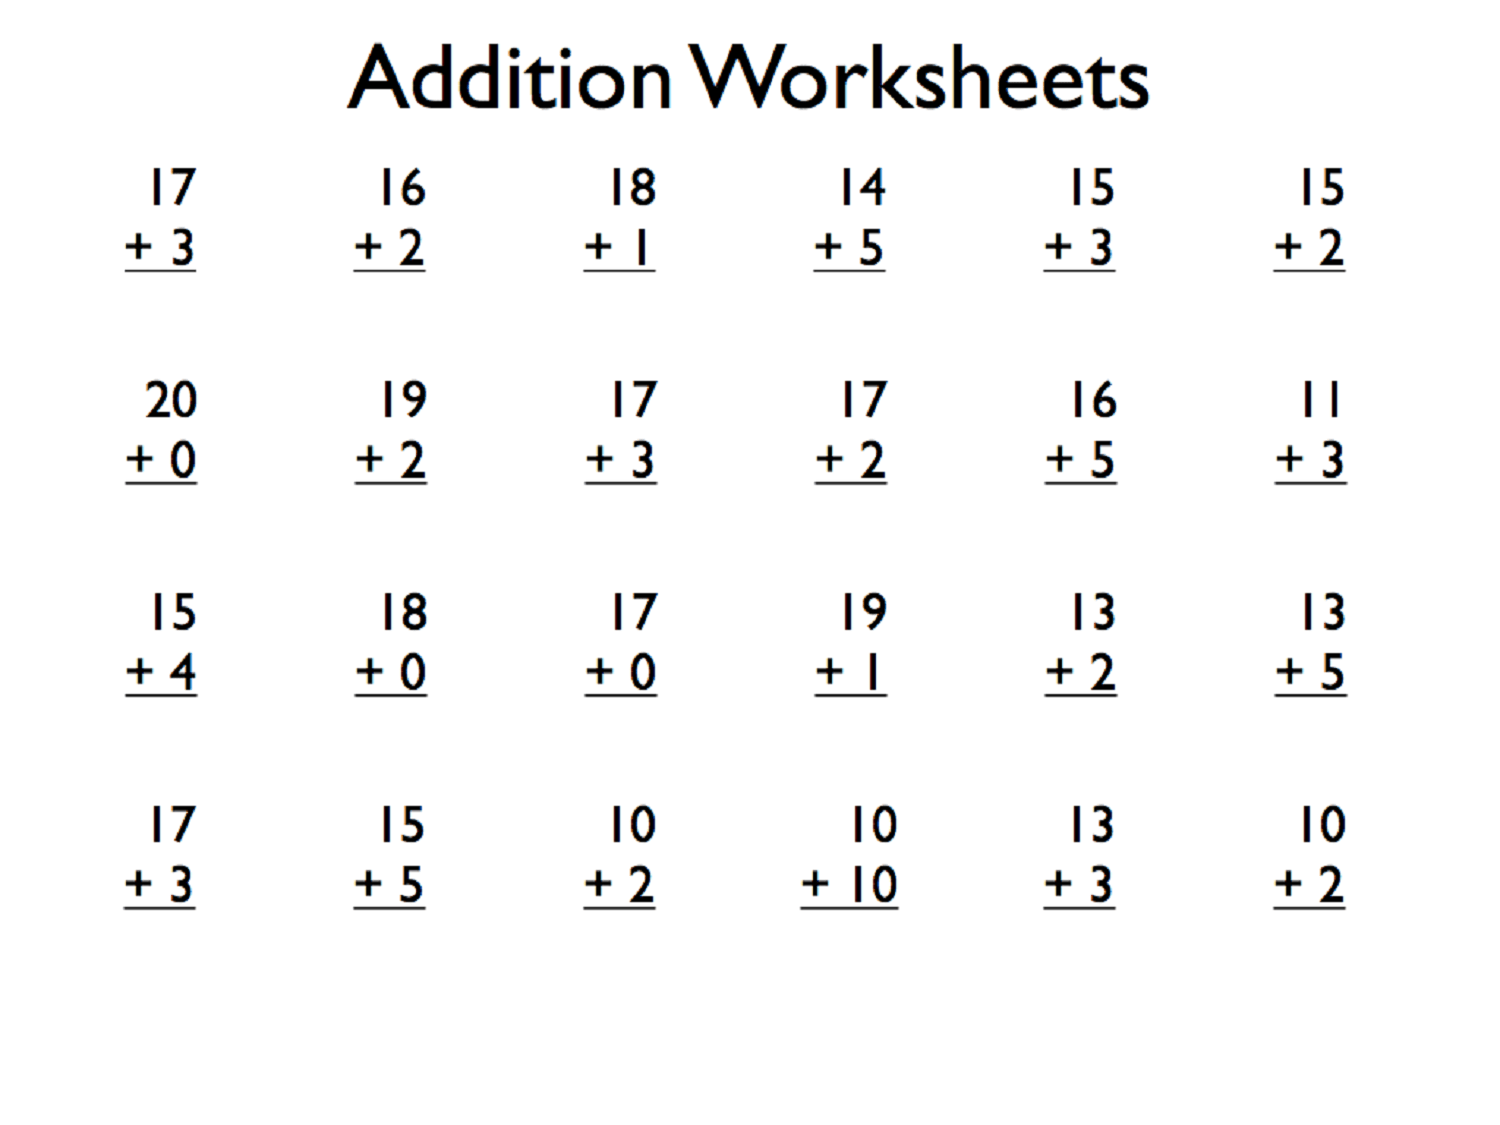 Printable Addition Worksheets For Kids